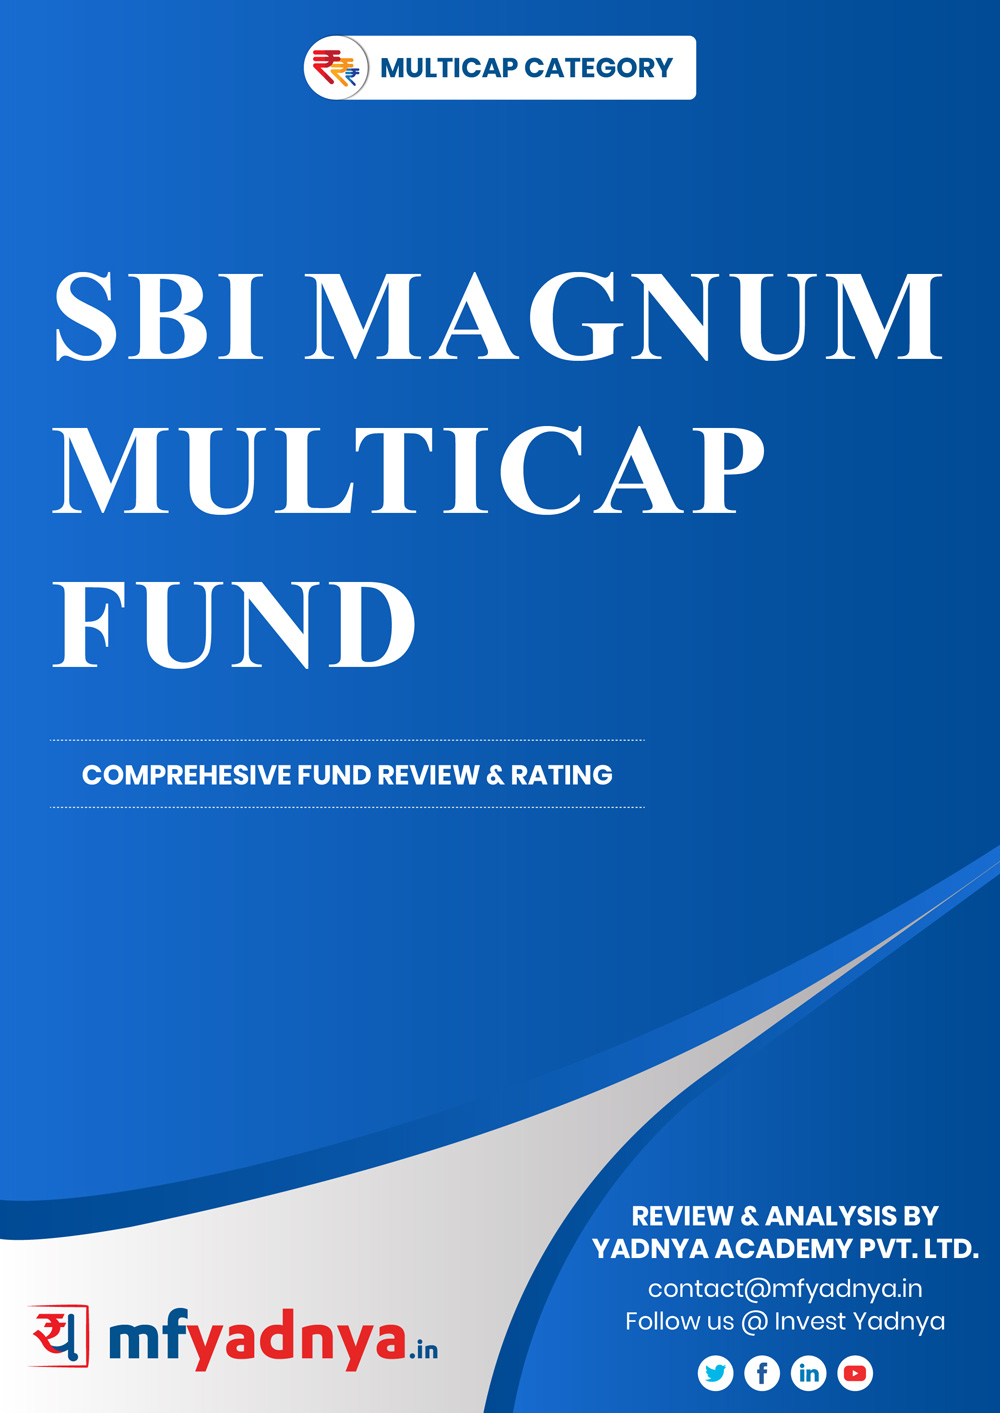 Multi-Cap Category Review - SBI Magnum Multicap Fund. Most Comprehensive and detailed MF review based on Yadnya's proprietary methodology of Green, Yellow & Red Star. Detailed Analysis & Review based on July 31st, 2019 data.